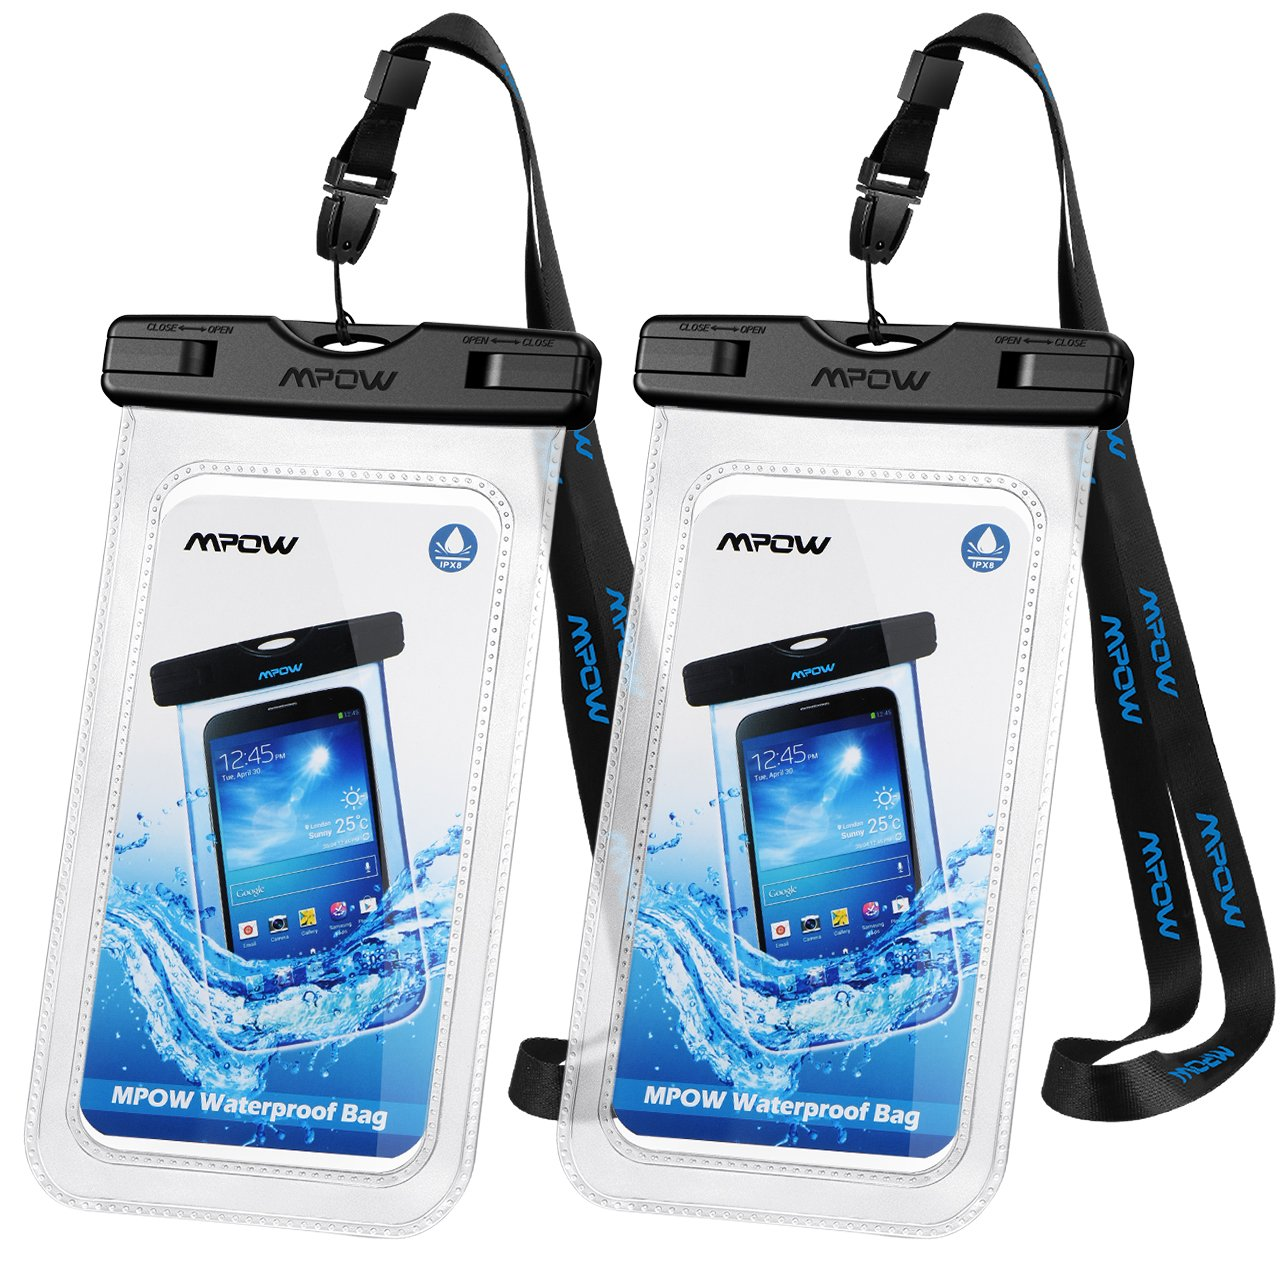 "Mpow Universal Waterproof Case, IPX8 Waterproof Phone Pouch Dry Bag Compatible for iPhone Xs Max/XS/XR/X/8/8P/7/7P Galaxy up to 6.0"", Protective Pouch for Pools Beach Kayaking Travel or Bath (2-Pack)"